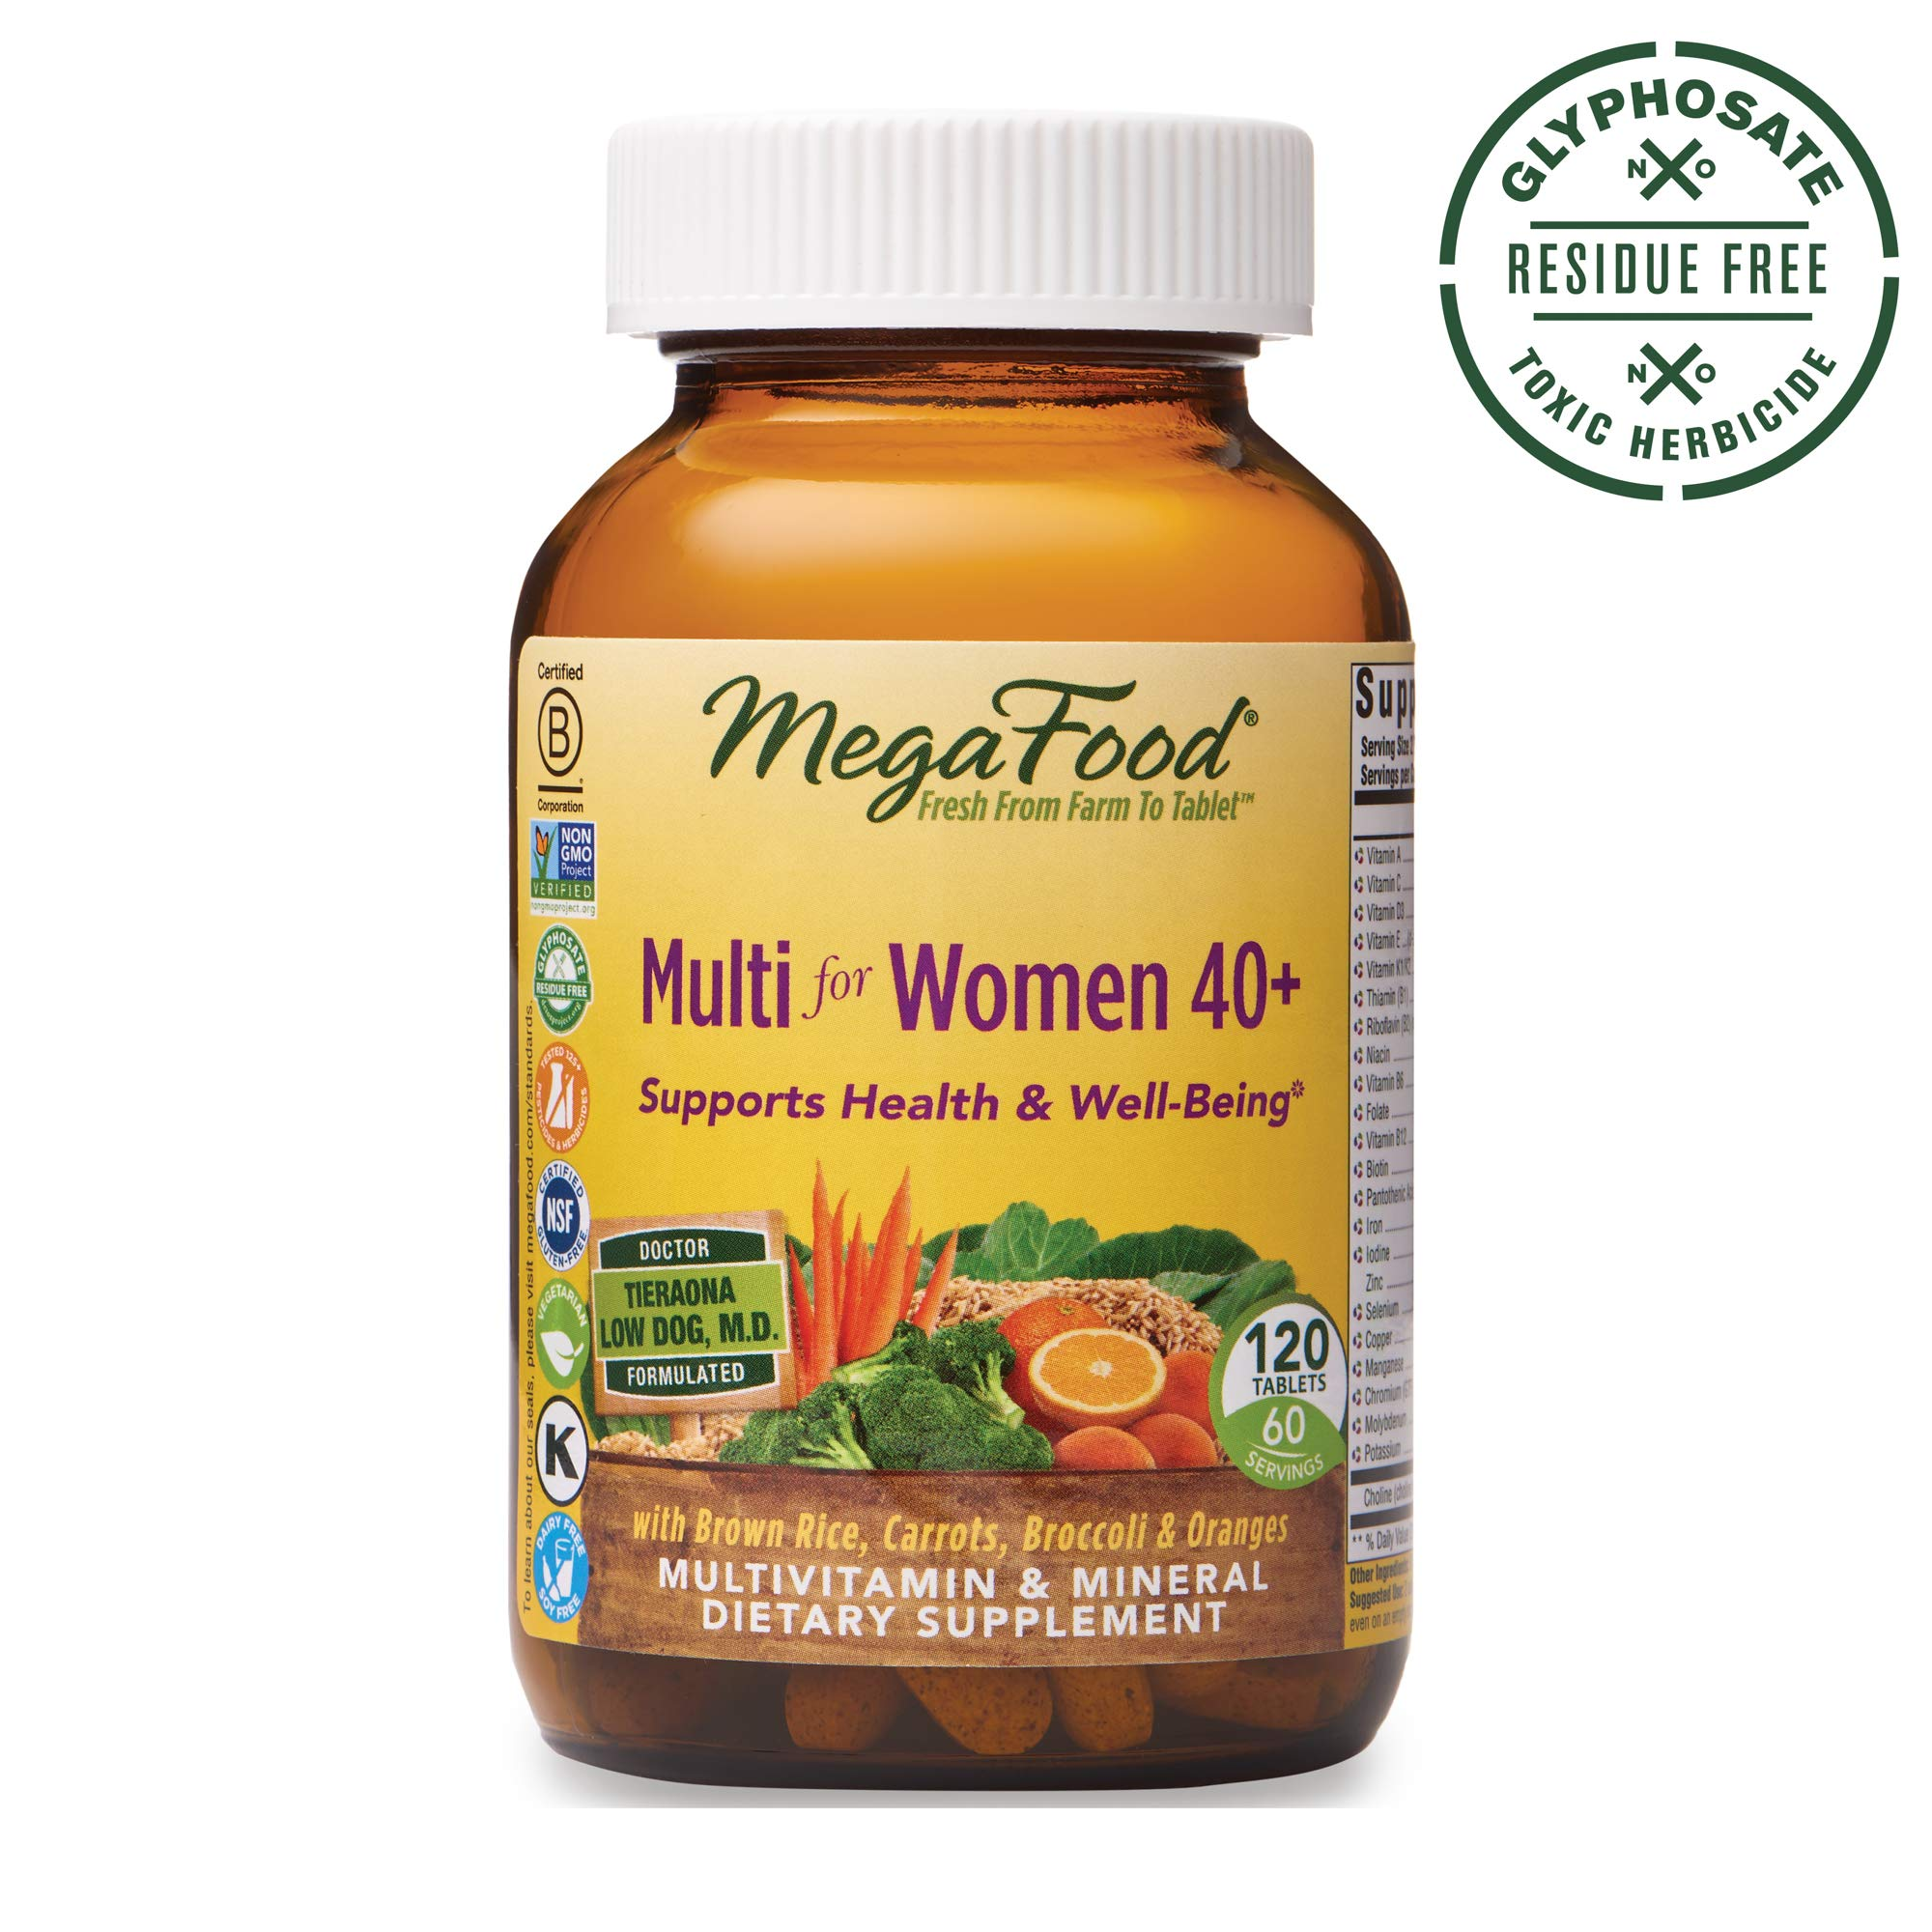 MegaFood, Multi for Women 40+, Supports Optimal Health and Wellbeing, Multivitamin and Mineral Dietary Supplement, Gluten Free, Vegetarian, 120 tablets (60 servings) by MegaFood